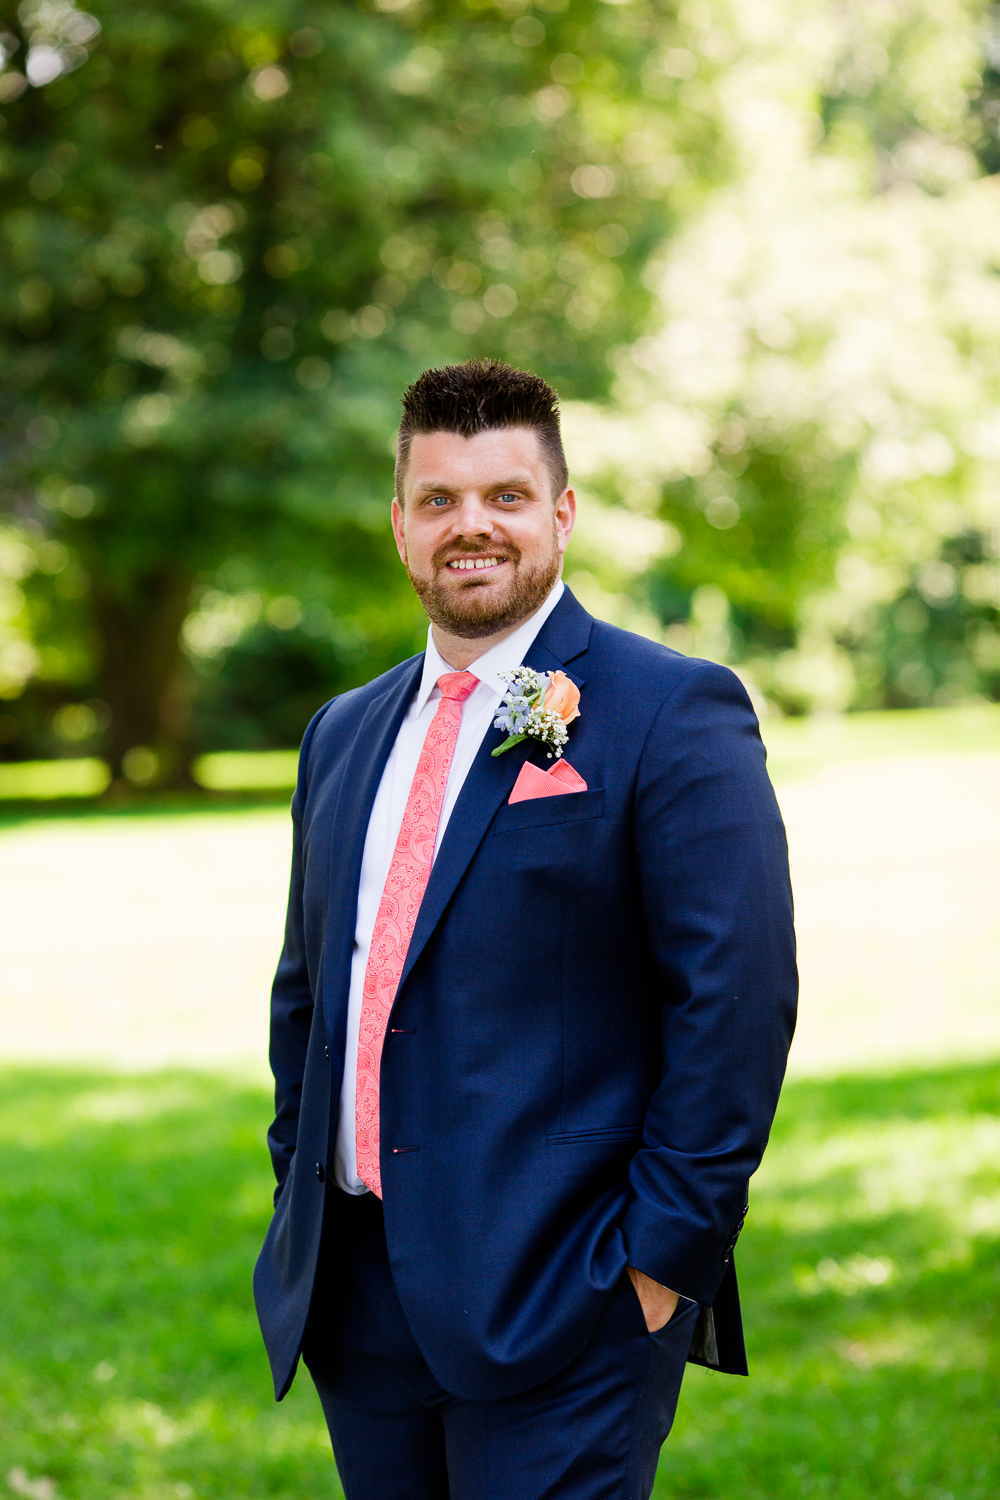 Portrait of the groom in a navy suit and coral tie.